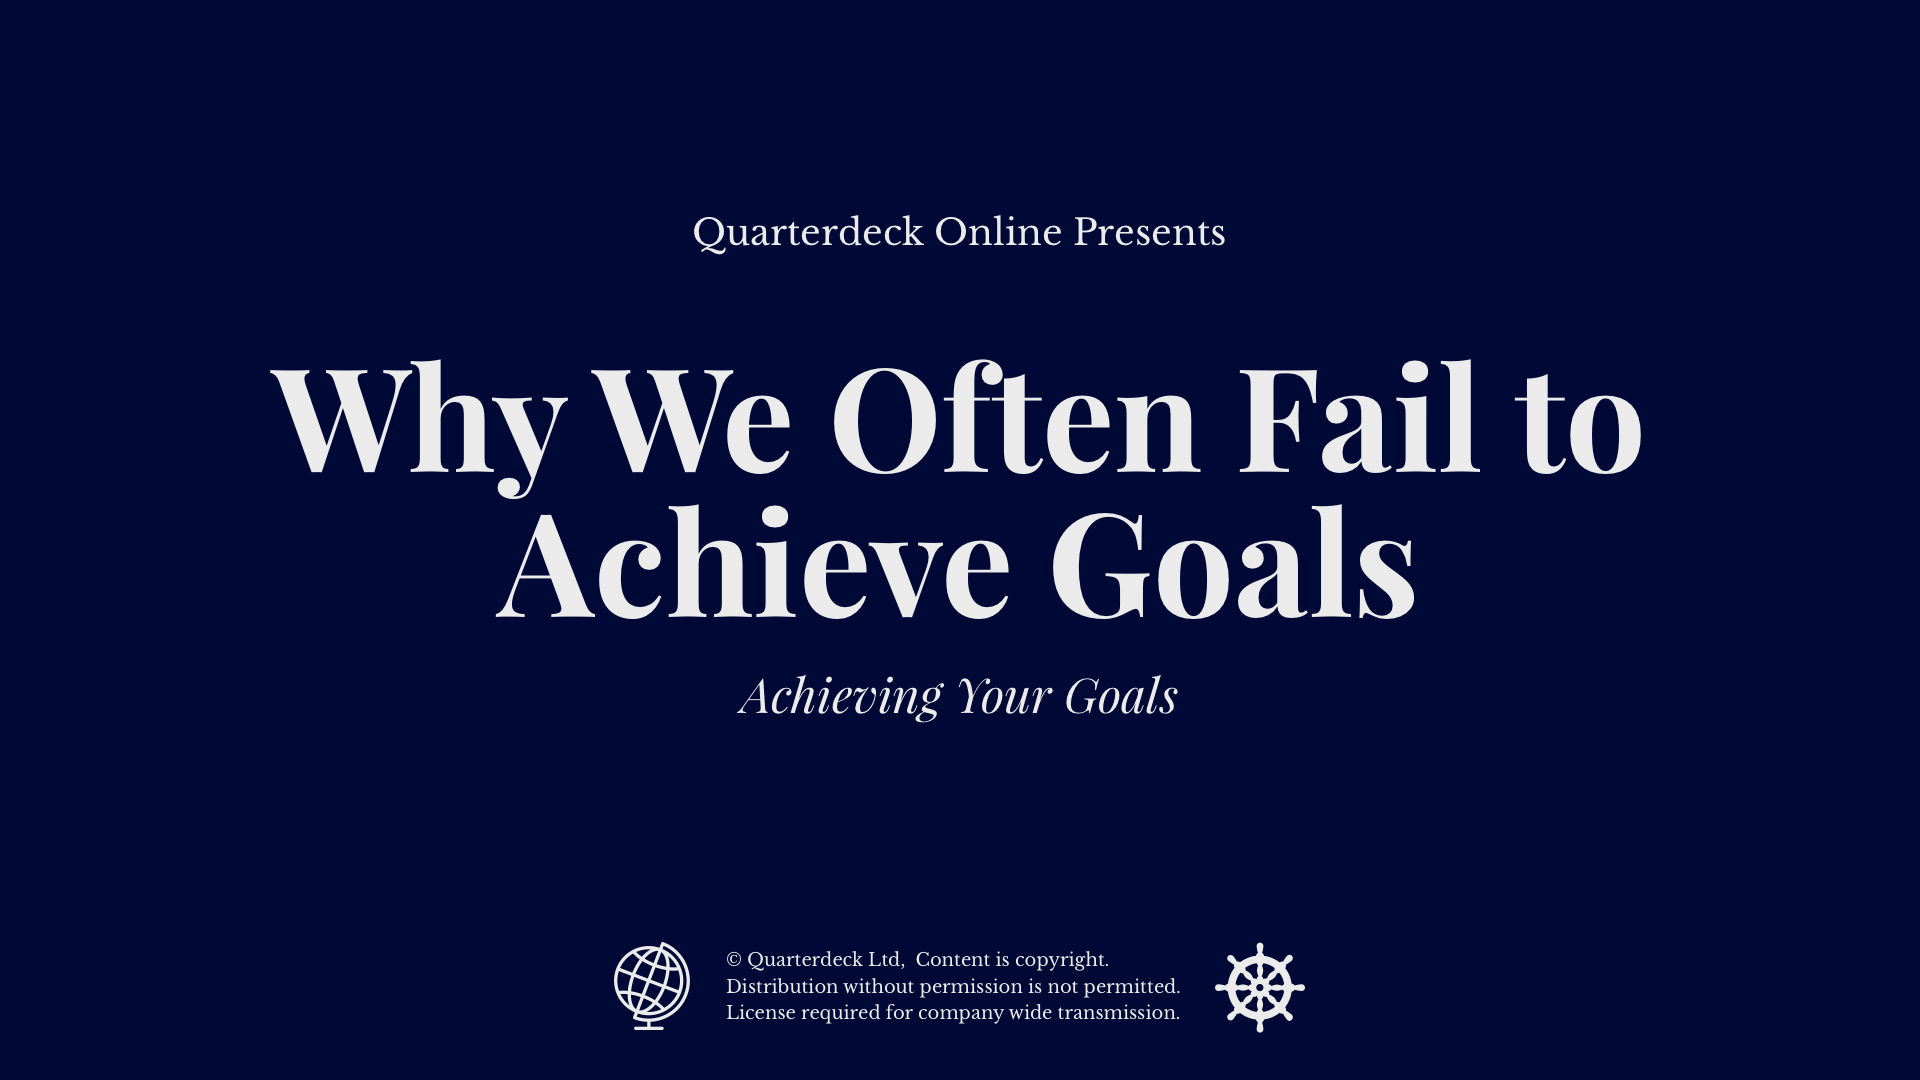 Why We Often Fail to Achieve Goals